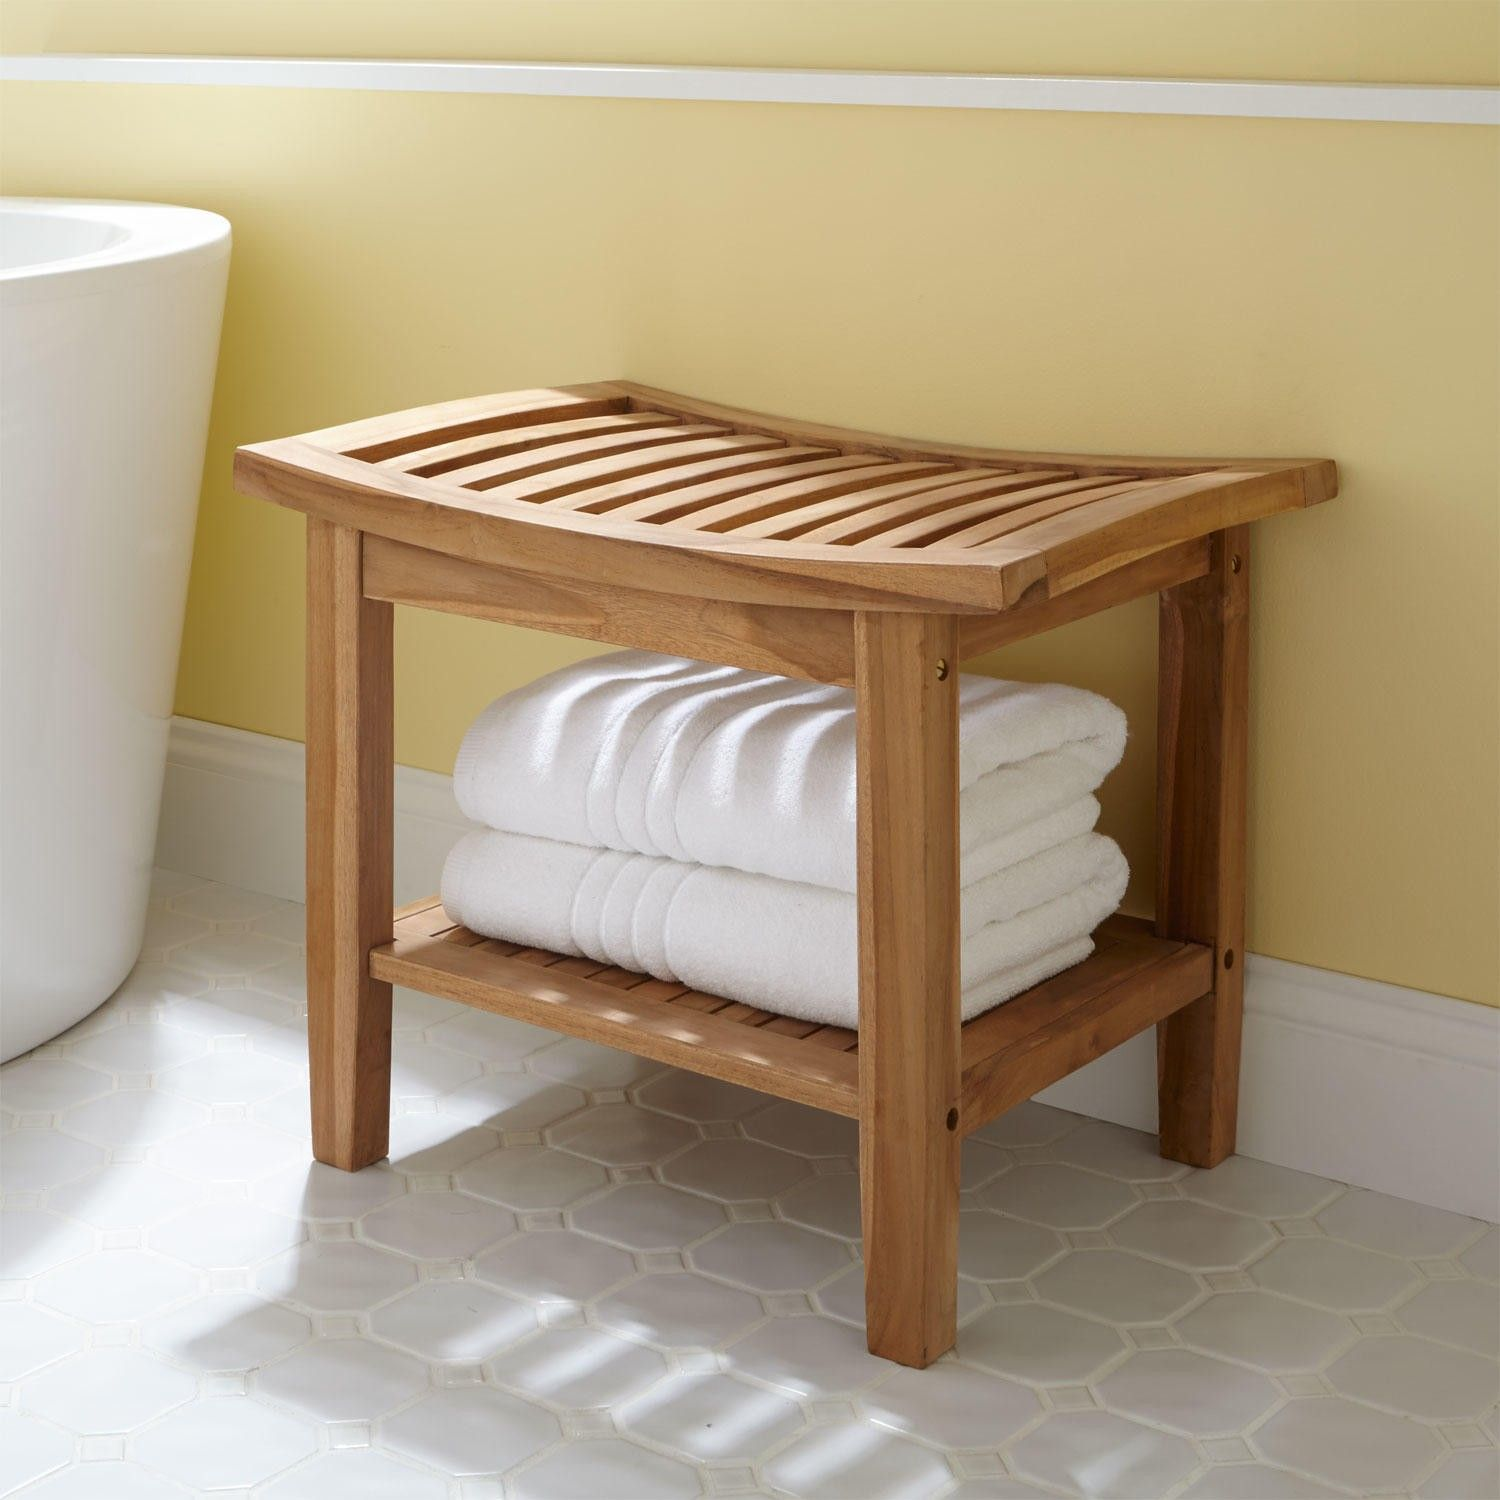 Elok Teak Shower Seat | Shower seat, Teak and Bath